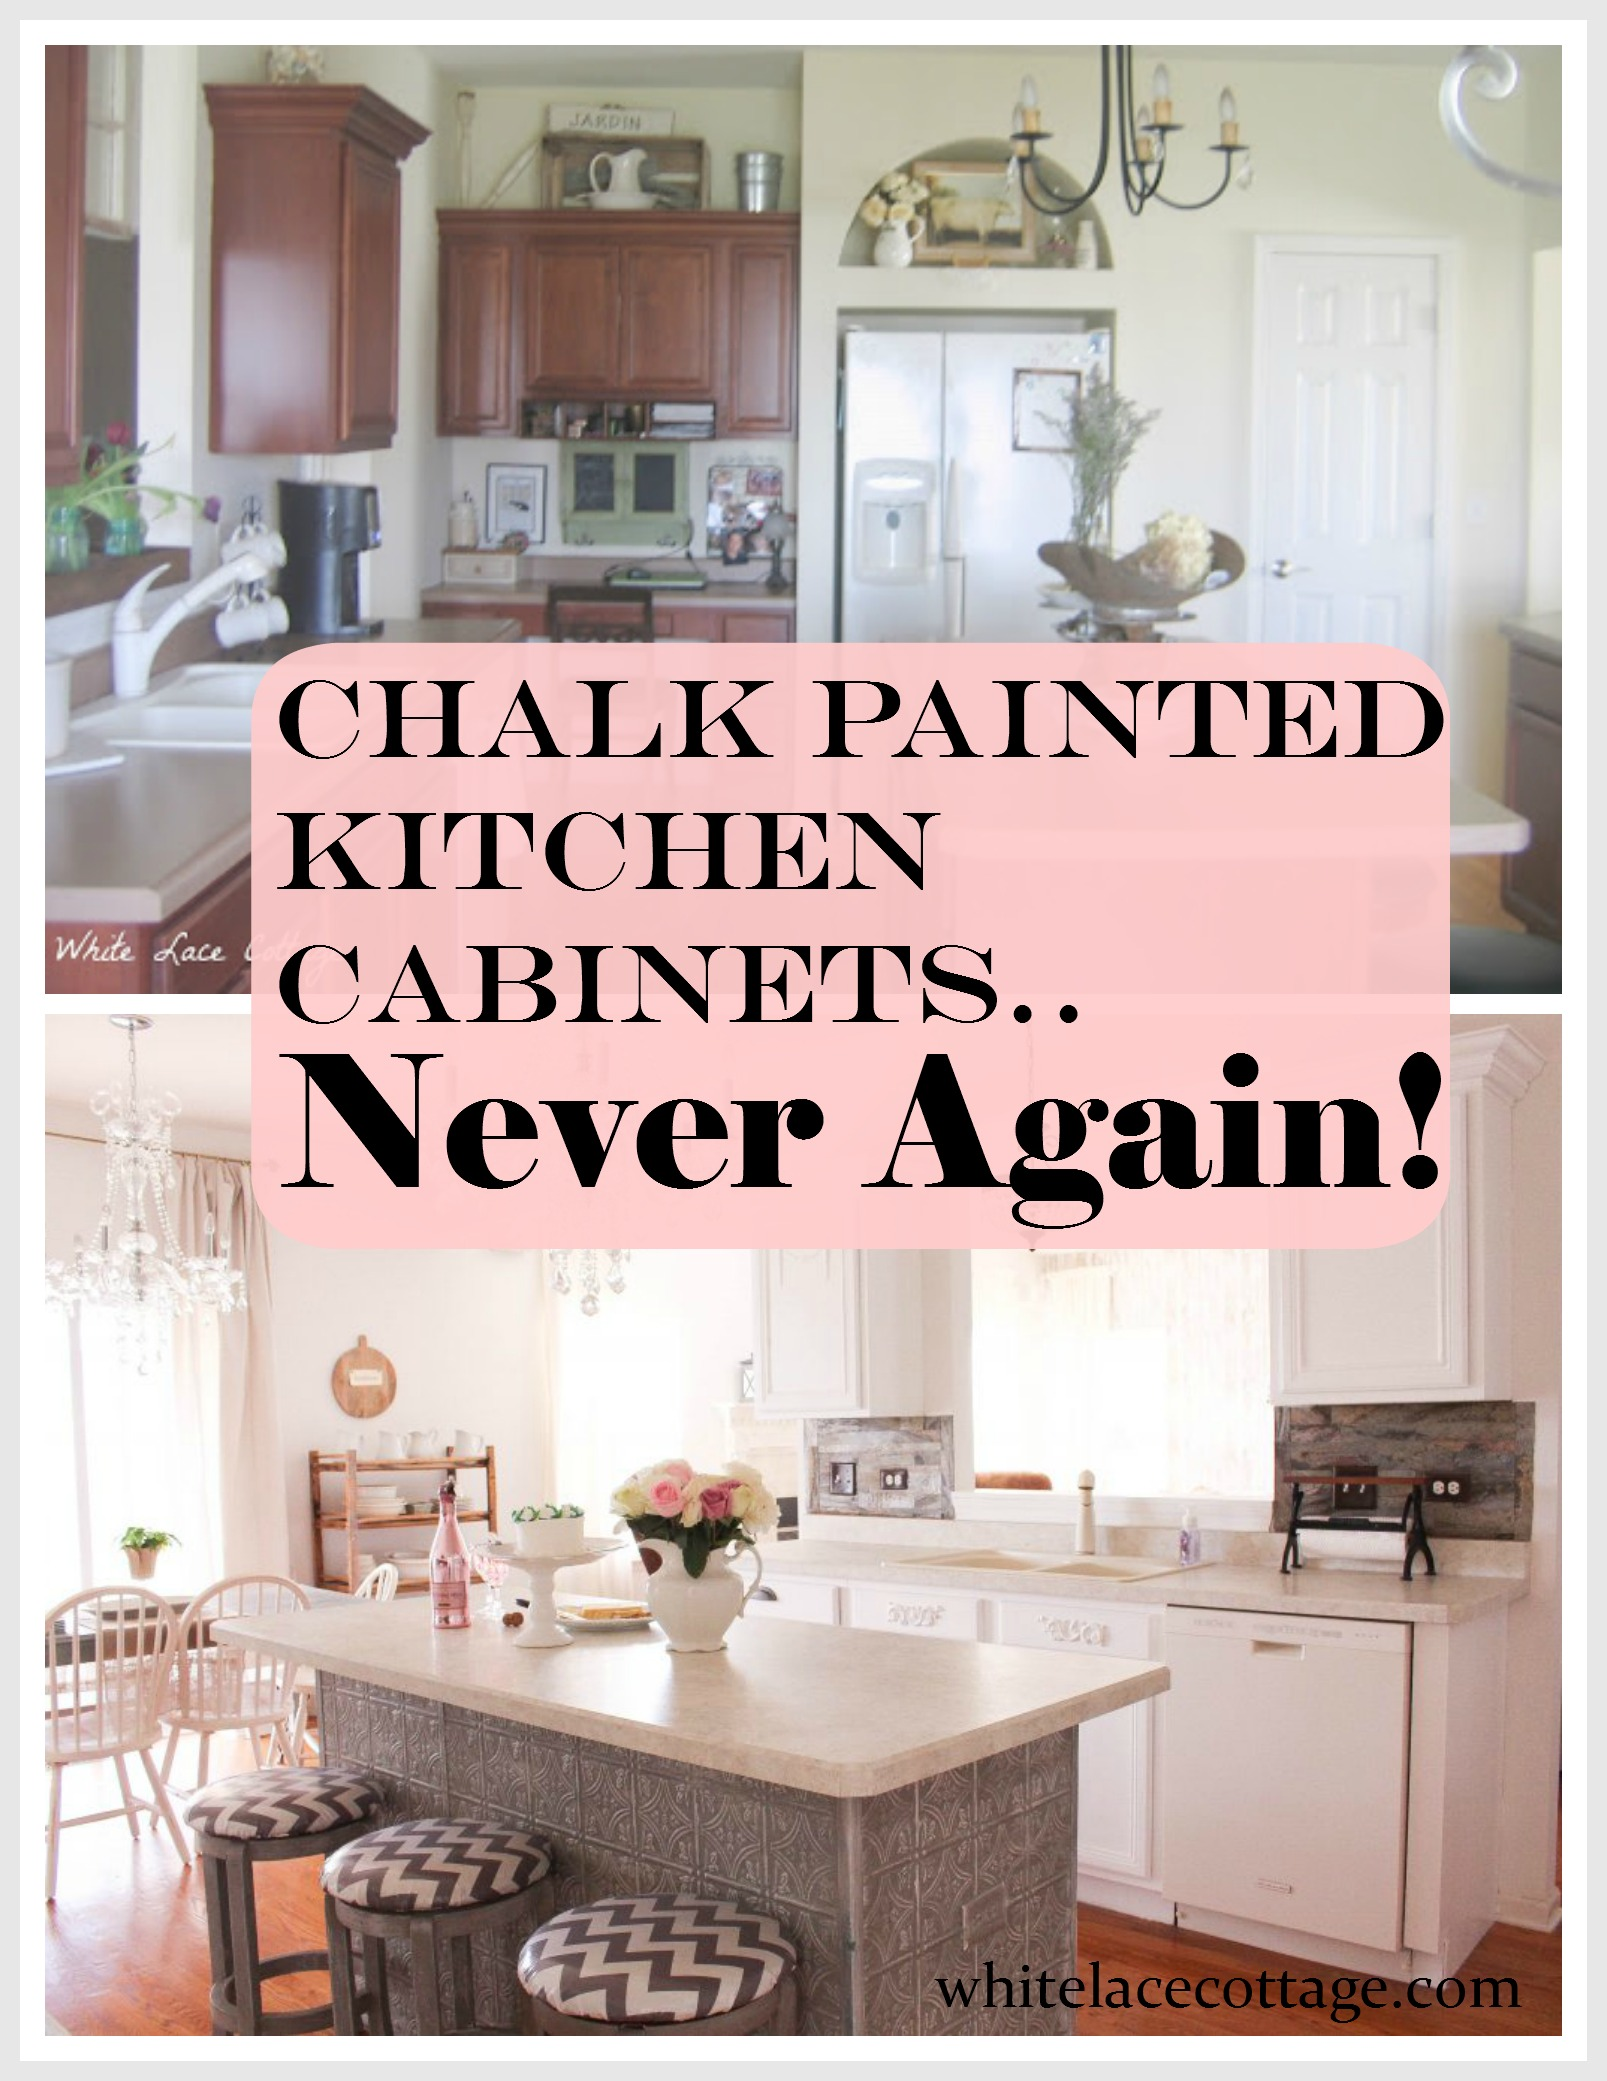 Chalk painted kitchen cabinets never again white lace for Best latex paint for kitchen cabinets